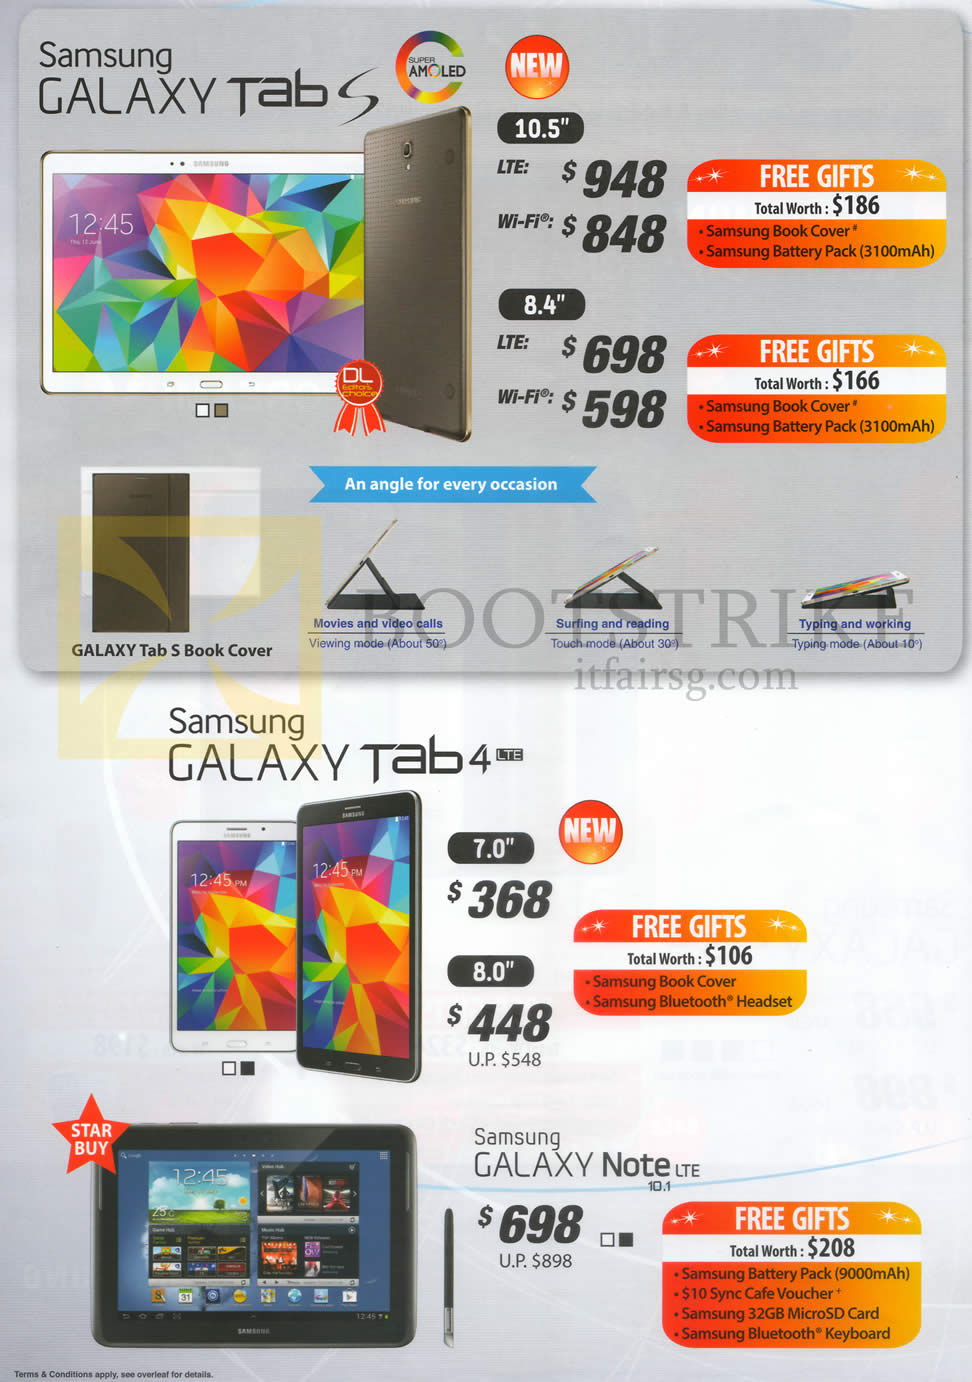 COMEX 2014 price list image brochure of Samsung Galaxy Tab S 10.5, Galaxy Tab S 8.4, Galaxy Tab 4 7.0, Galaxy Tab 4 8.0, Galaxy Note 10